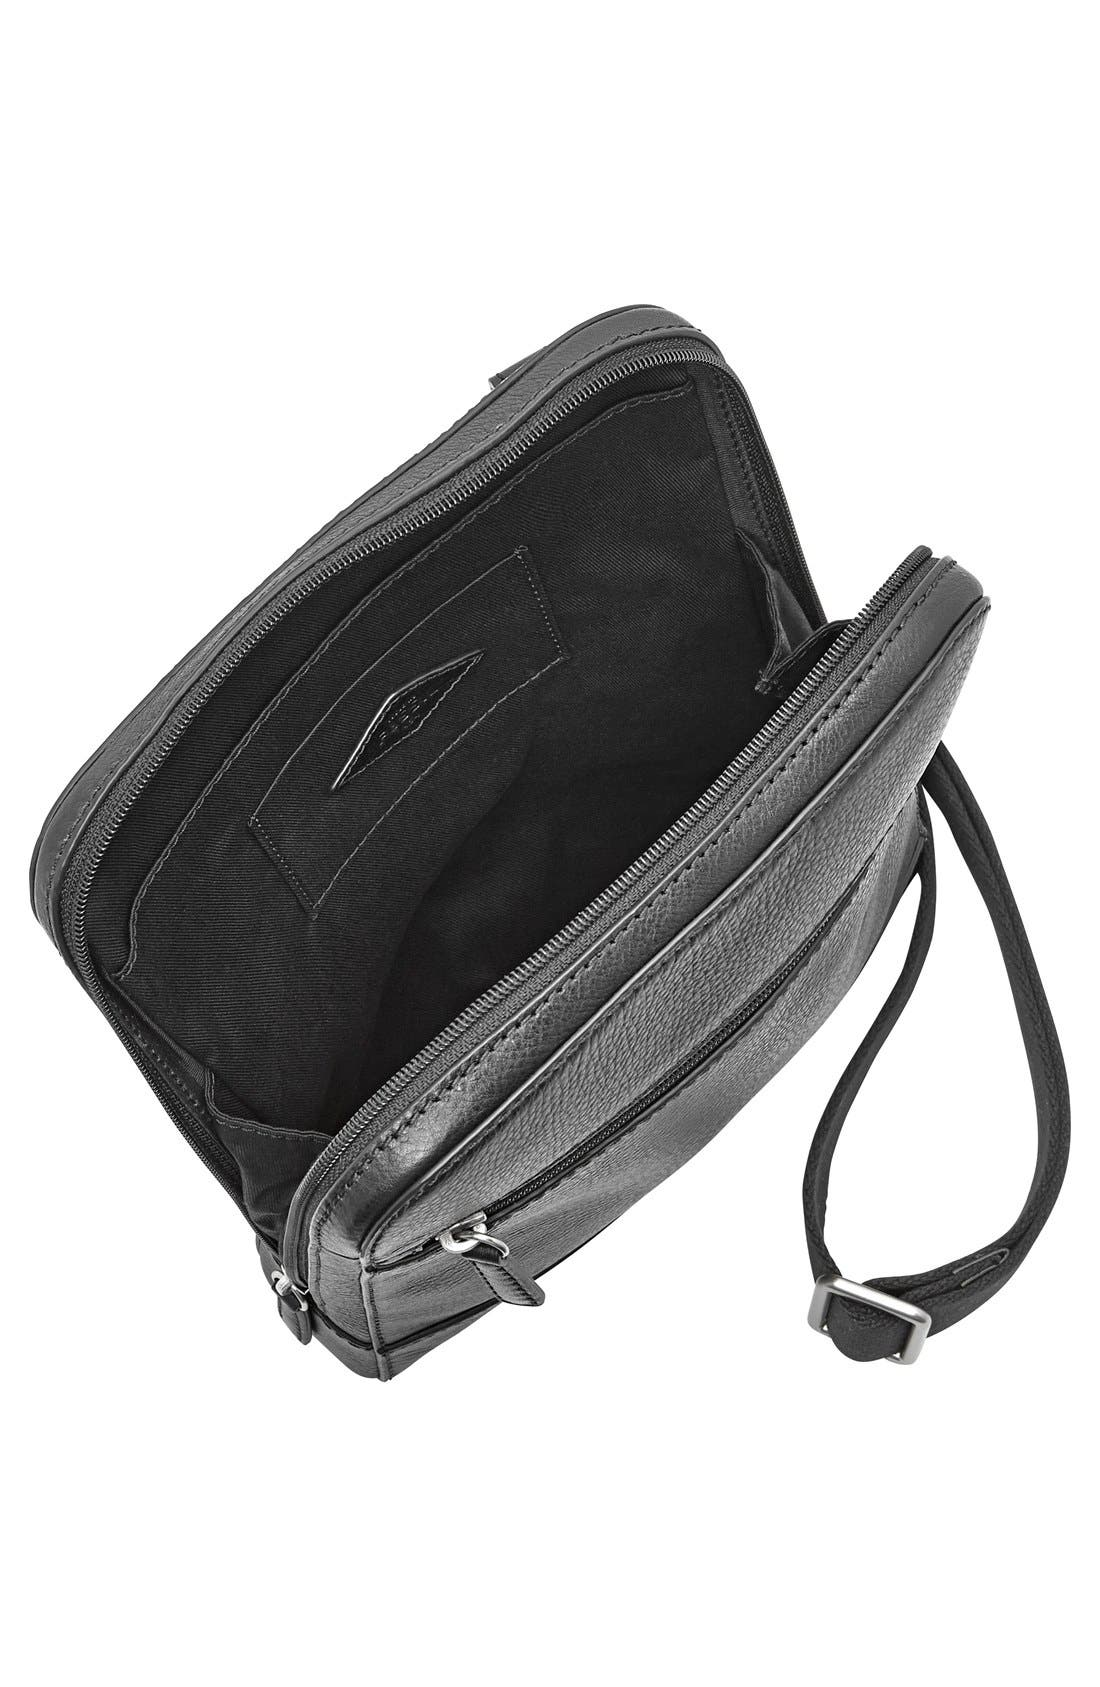 'Rory' Leather Crossbody Bag,                             Alternate thumbnail 2, color,                             Black